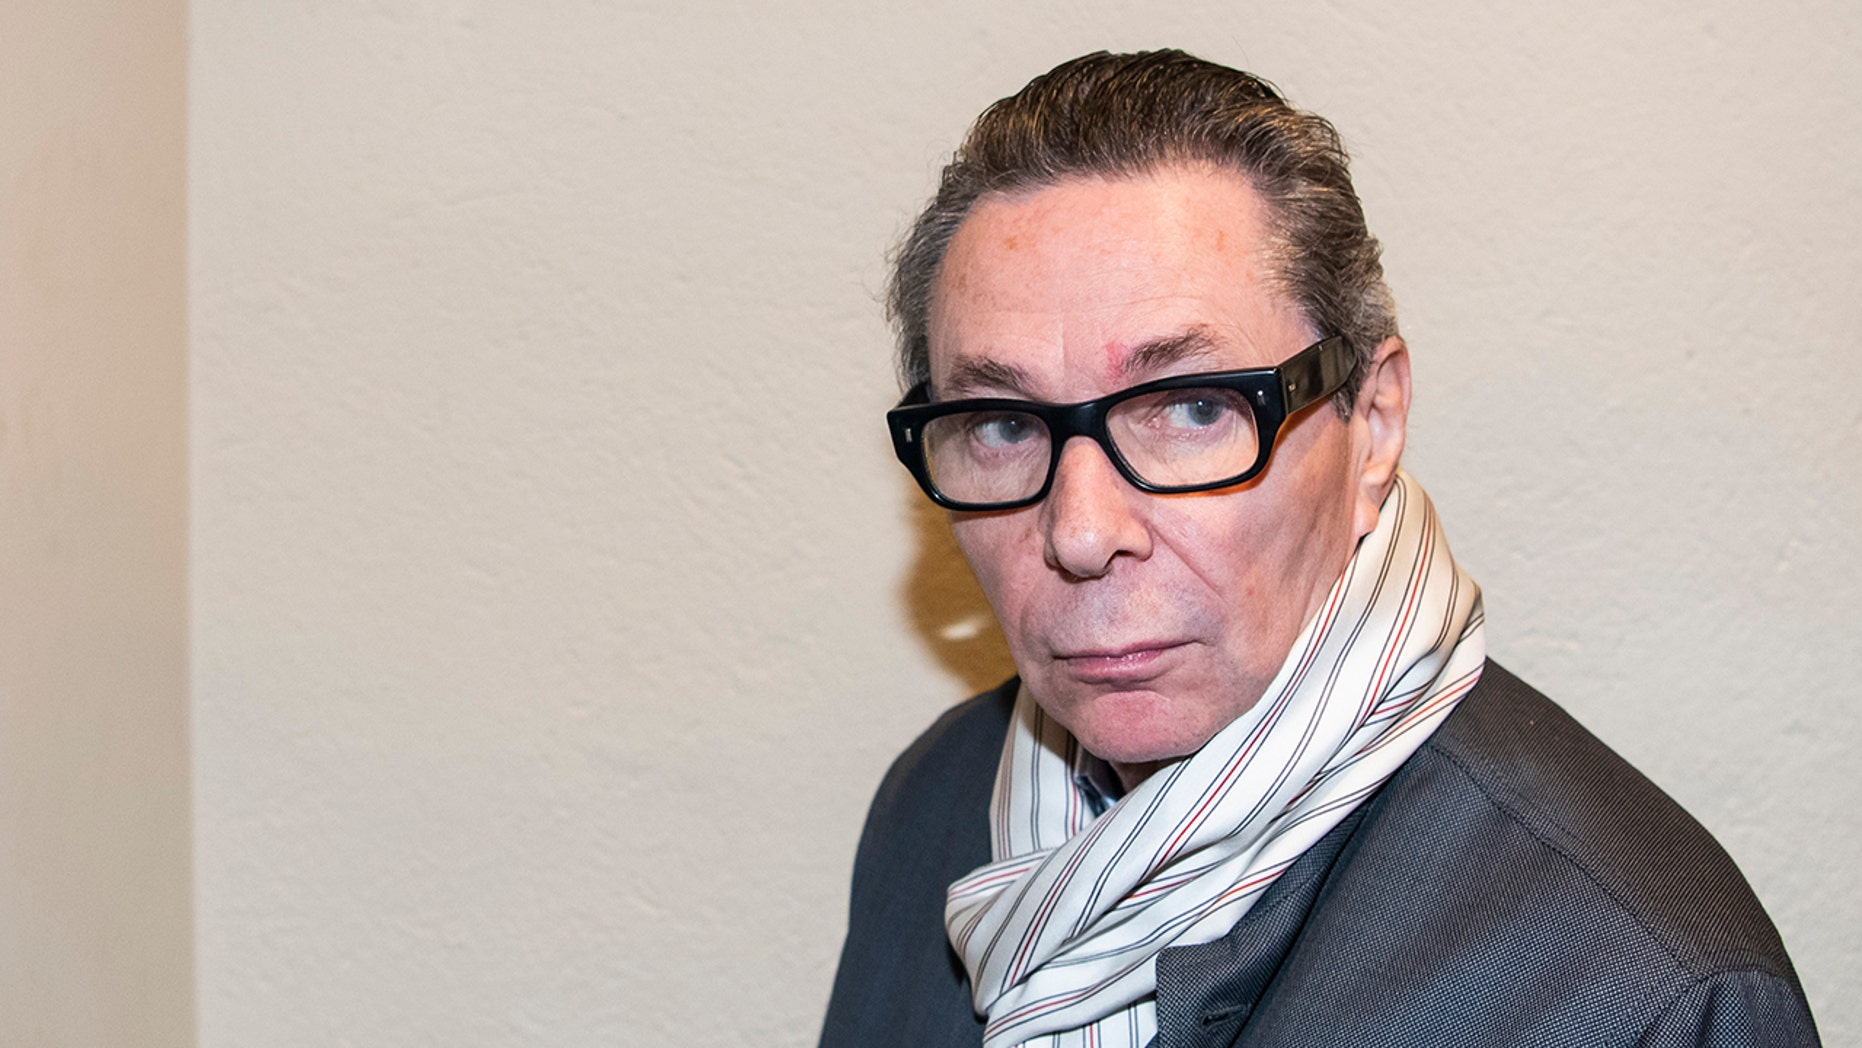 Jean-Claude Arnault arrives at court in Stockholm last year, where he was convicted of rape, and sentenced to two years in prison. (JONATHAN NACKSTRAND/AFP/Getty Images)